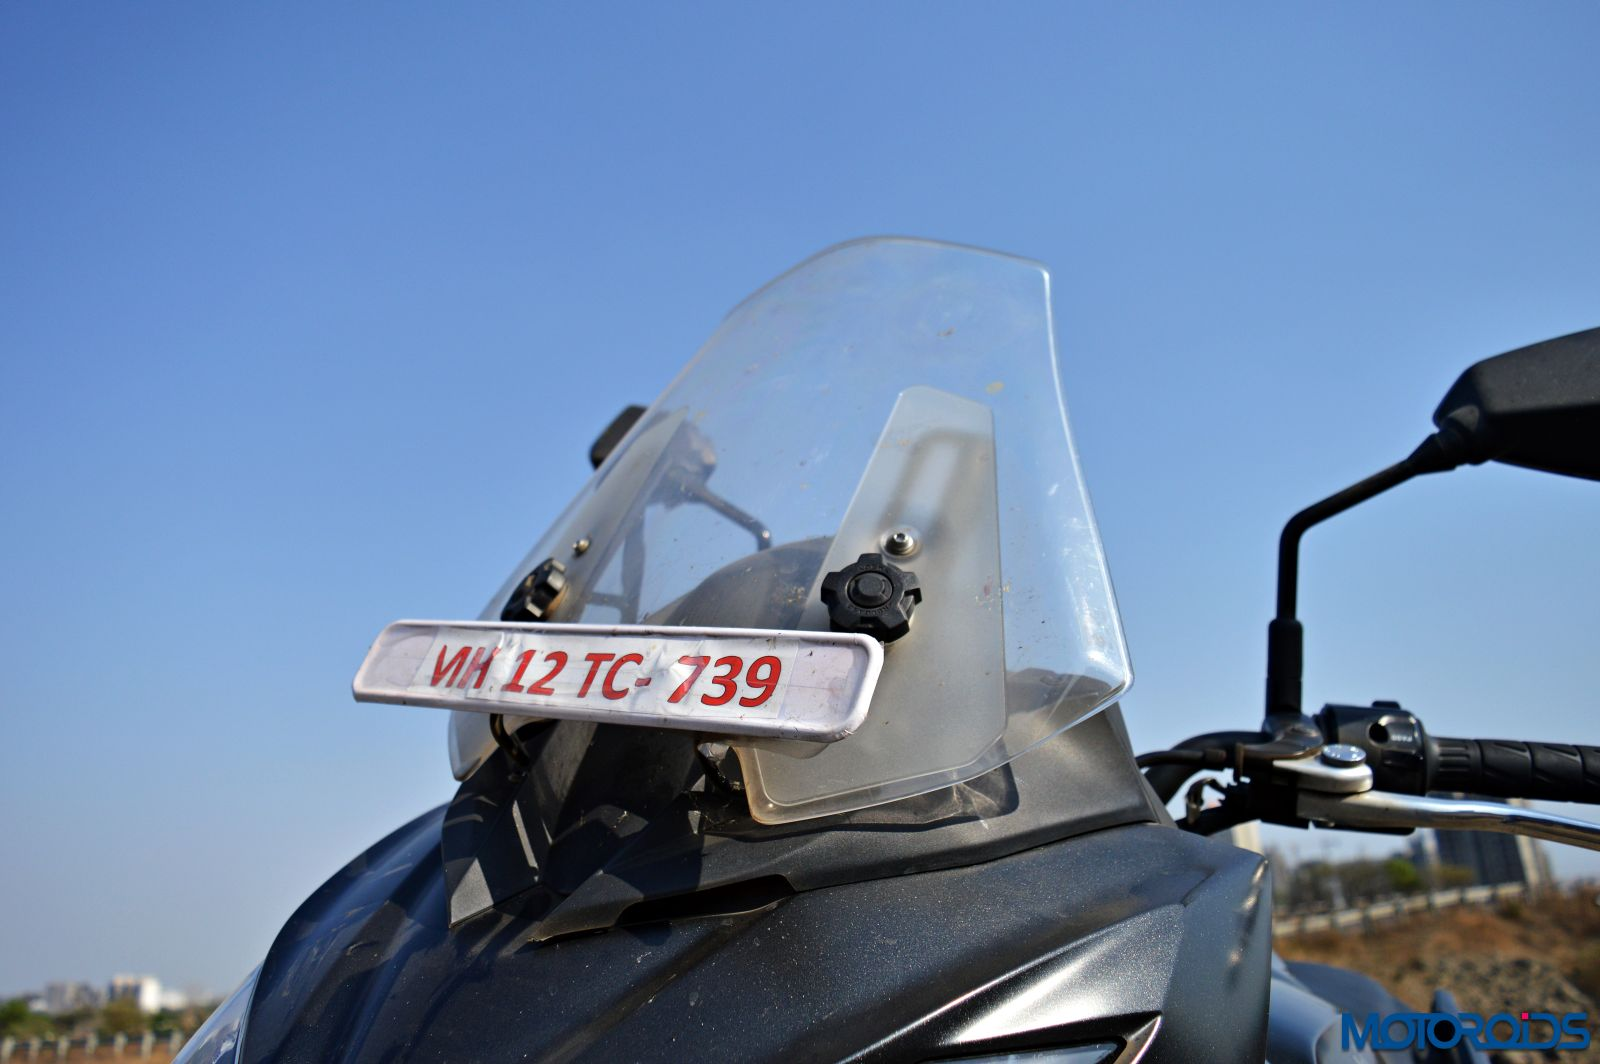 Kawasaki Versys 650 - Review - Details - Windscreen (3)